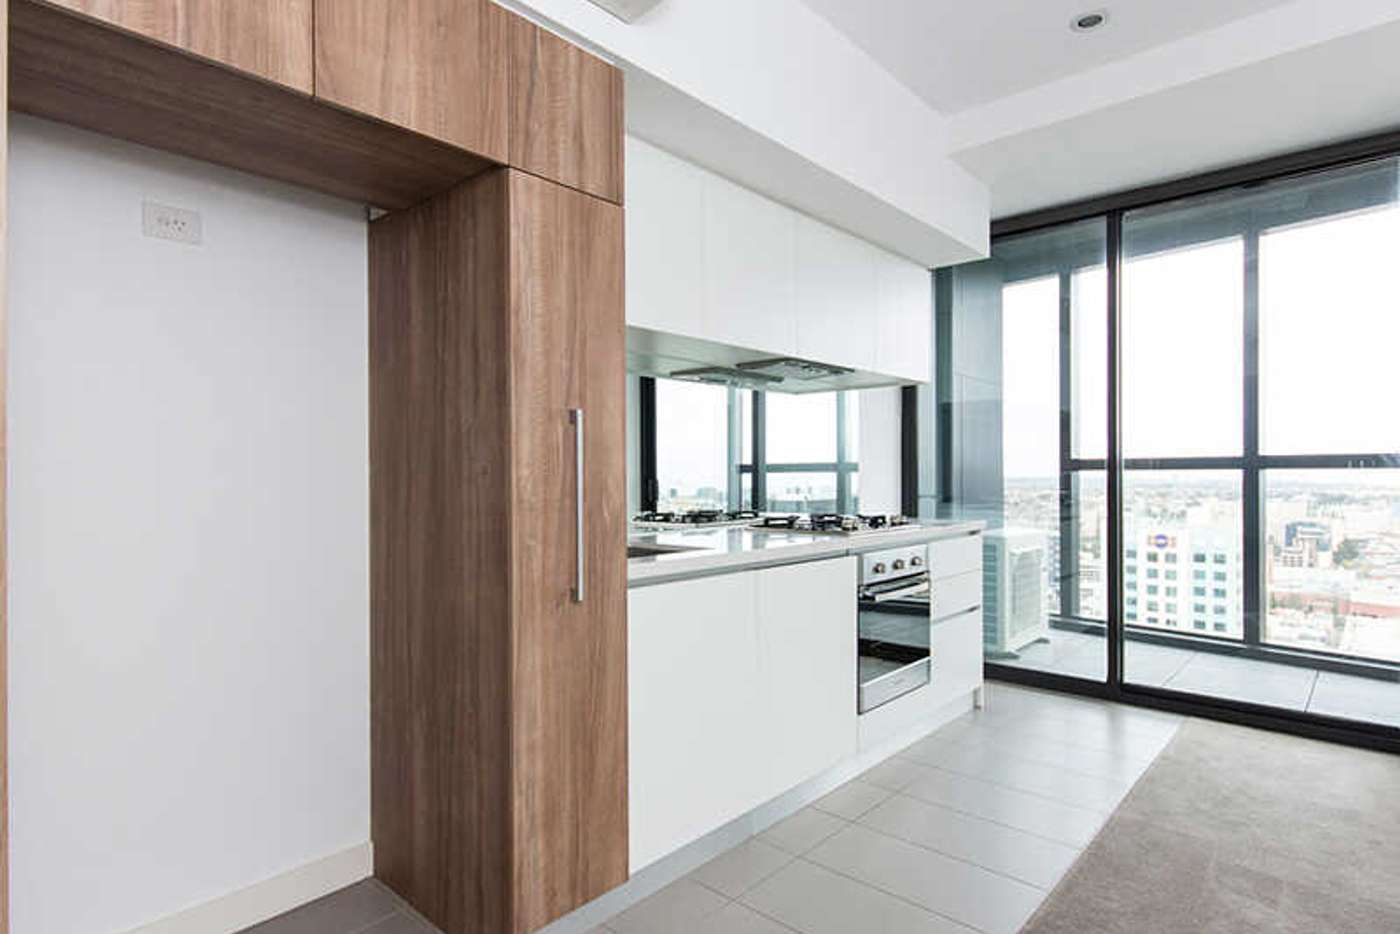 Main view of Homely apartment listing, 2507/35 Malcolm Street, South Yarra VIC 3141